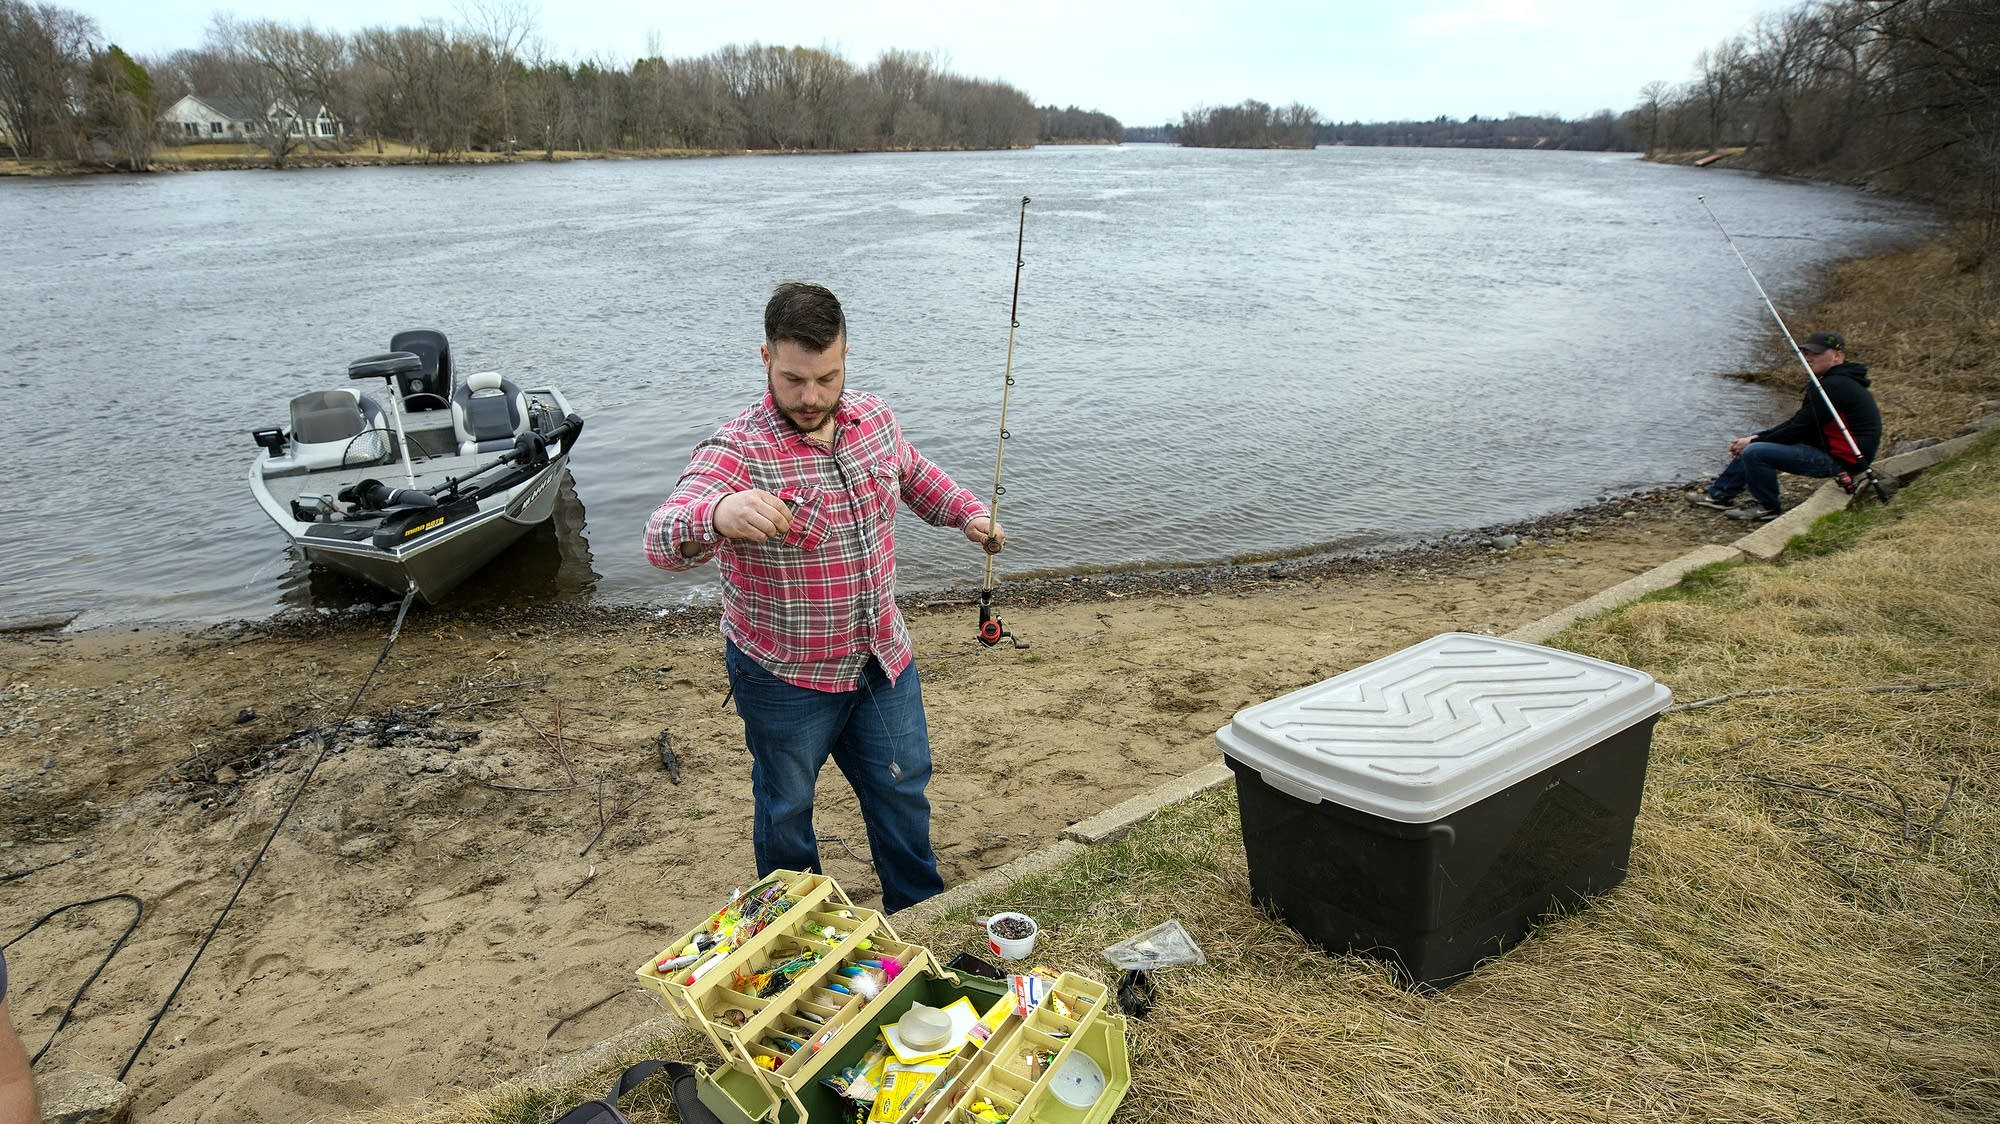 Thomas Struntz gets his gear ready along the Mississippi